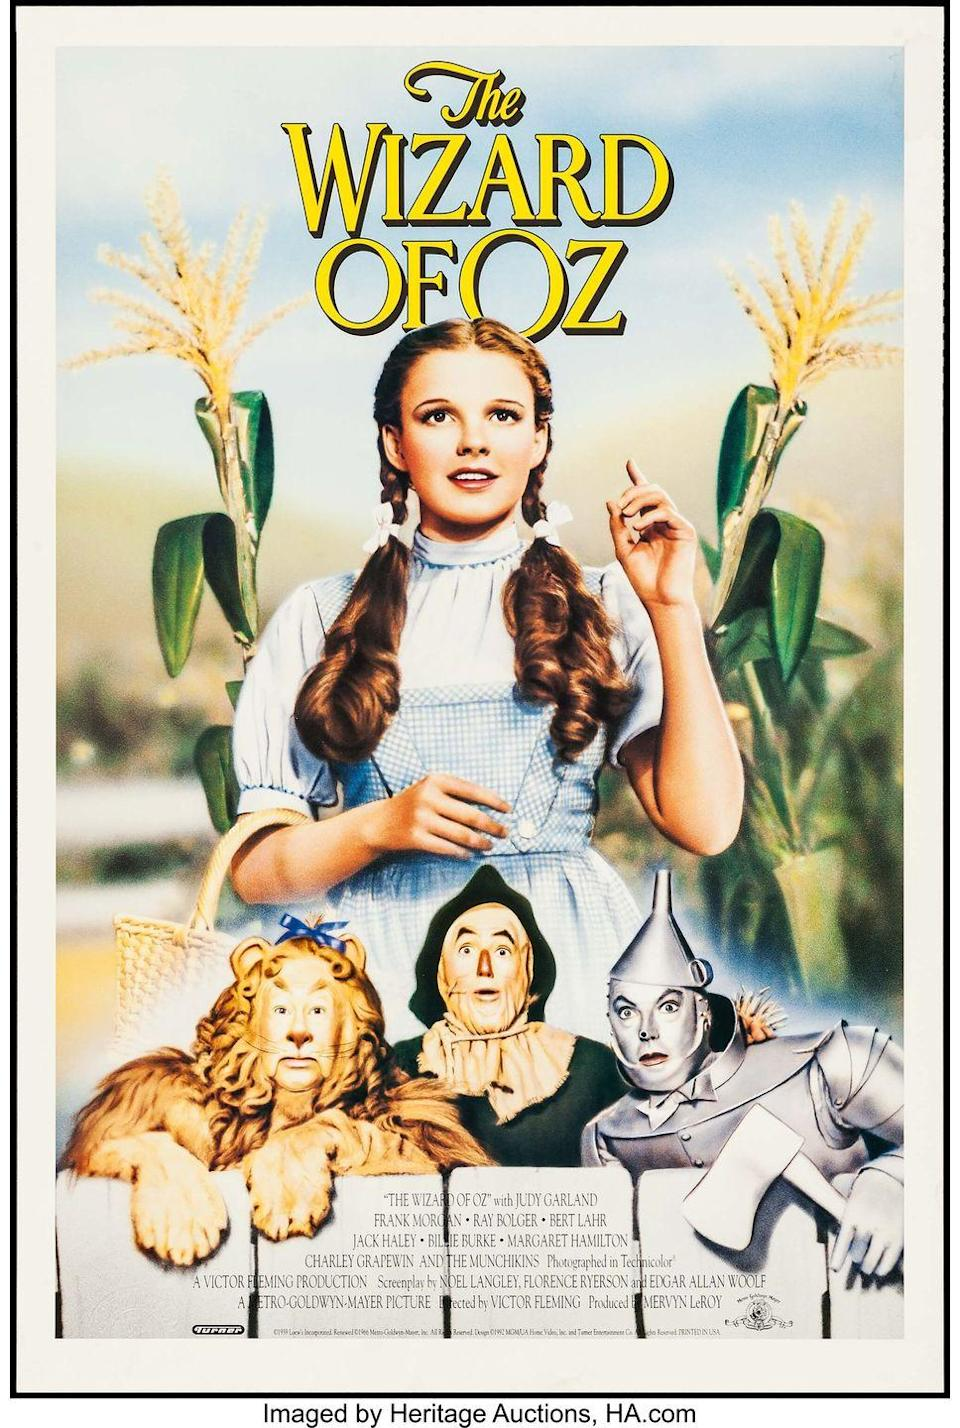 <p><strong>Dorothy actually wears high heels for her entire journey? </strong></p><p>While there is a talking Tin Man, a Scarecrow longing for a brain, and a Cowardly Lion who walks on his hind legs, what we can't get past is how Dorothy (Judy Garland) was able to travel their entire adventure in red high heels. Through the forest, on the run from flying monkeys, through the fields ahead of Emerald City: Her feet must have been killing her. Good thing those ruby slippers had magical capabilities and helped her get back to Kansas with just a few clicks.<br></p>